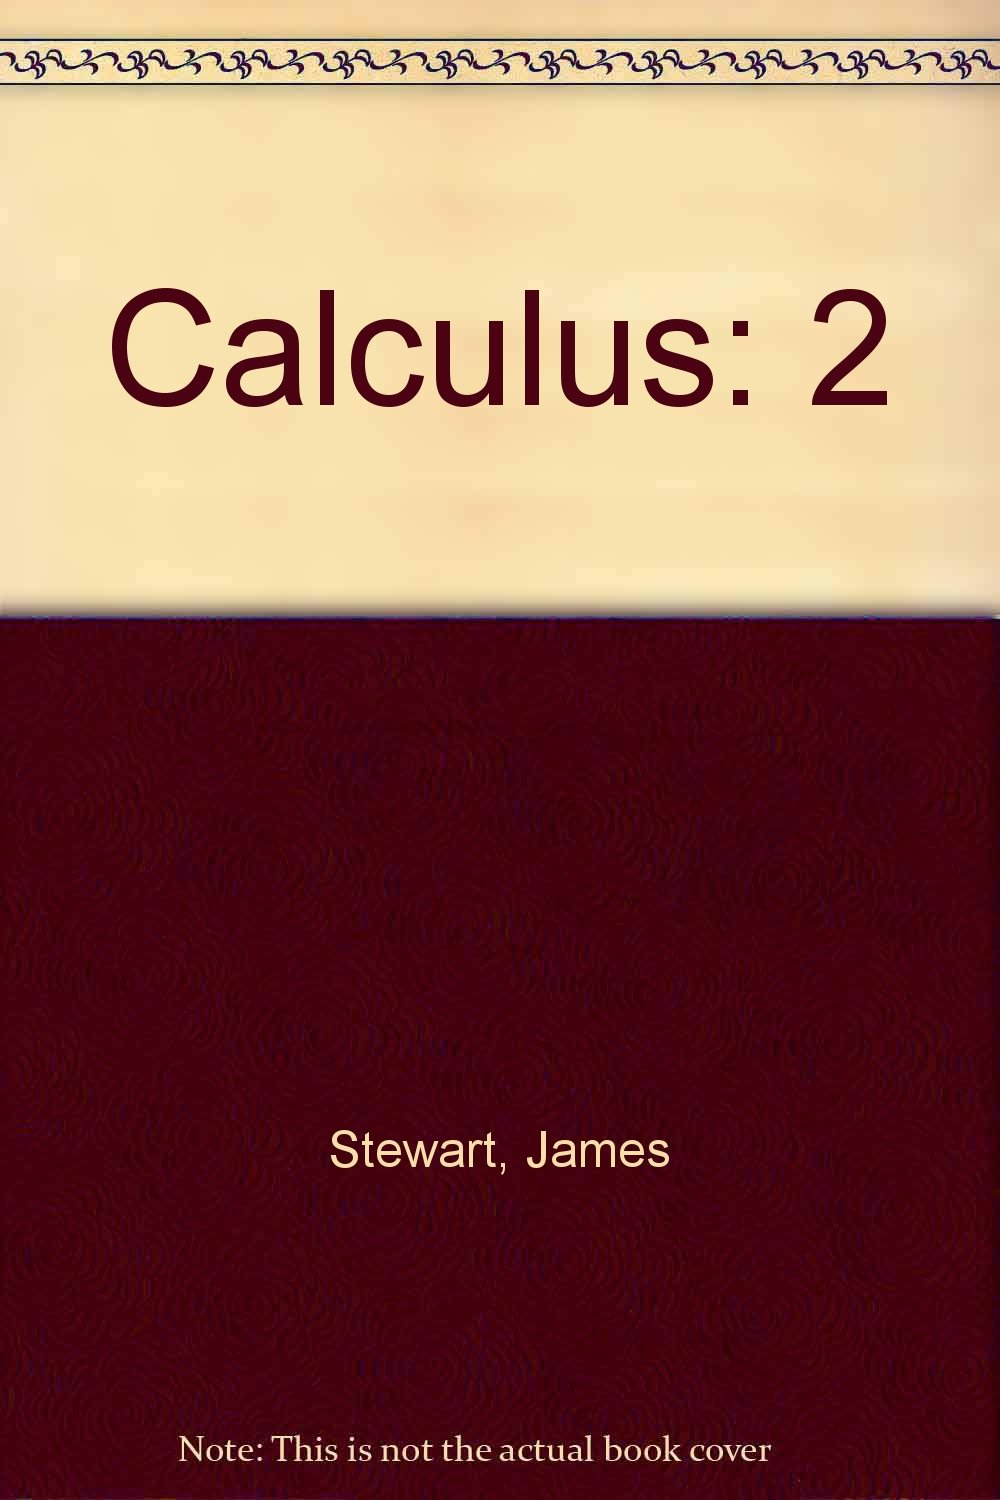 Calculus: Student Solutions Manual, Vol. 2: James Stewart, Barbara Frank:  9780534066925: Amazon.com: Books